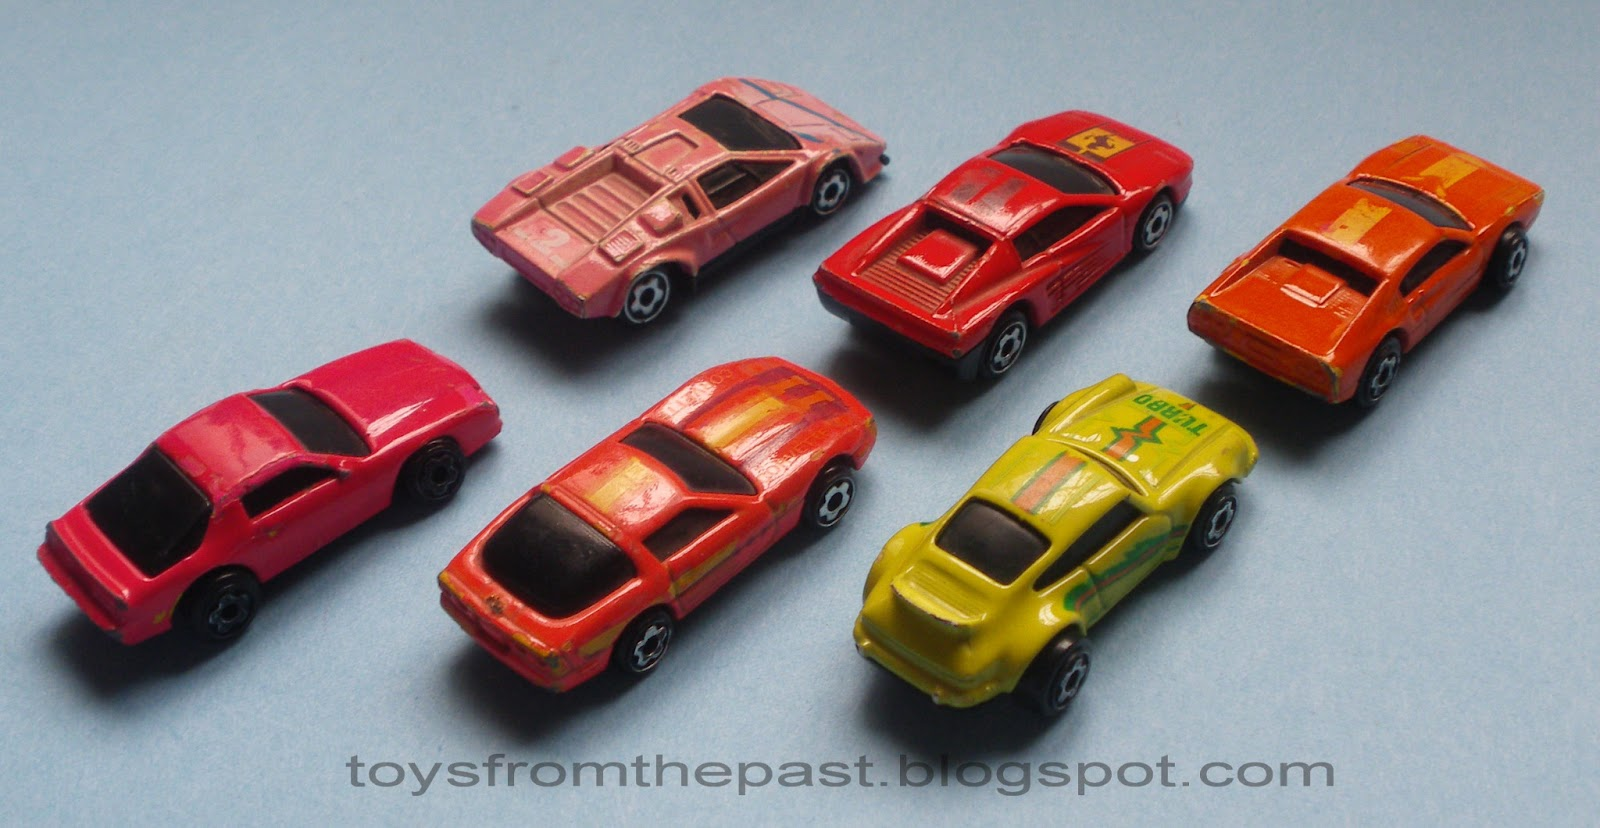 Toys From The Past 281 Hot Wheels Mini Automagic Micro Color Racers 1990